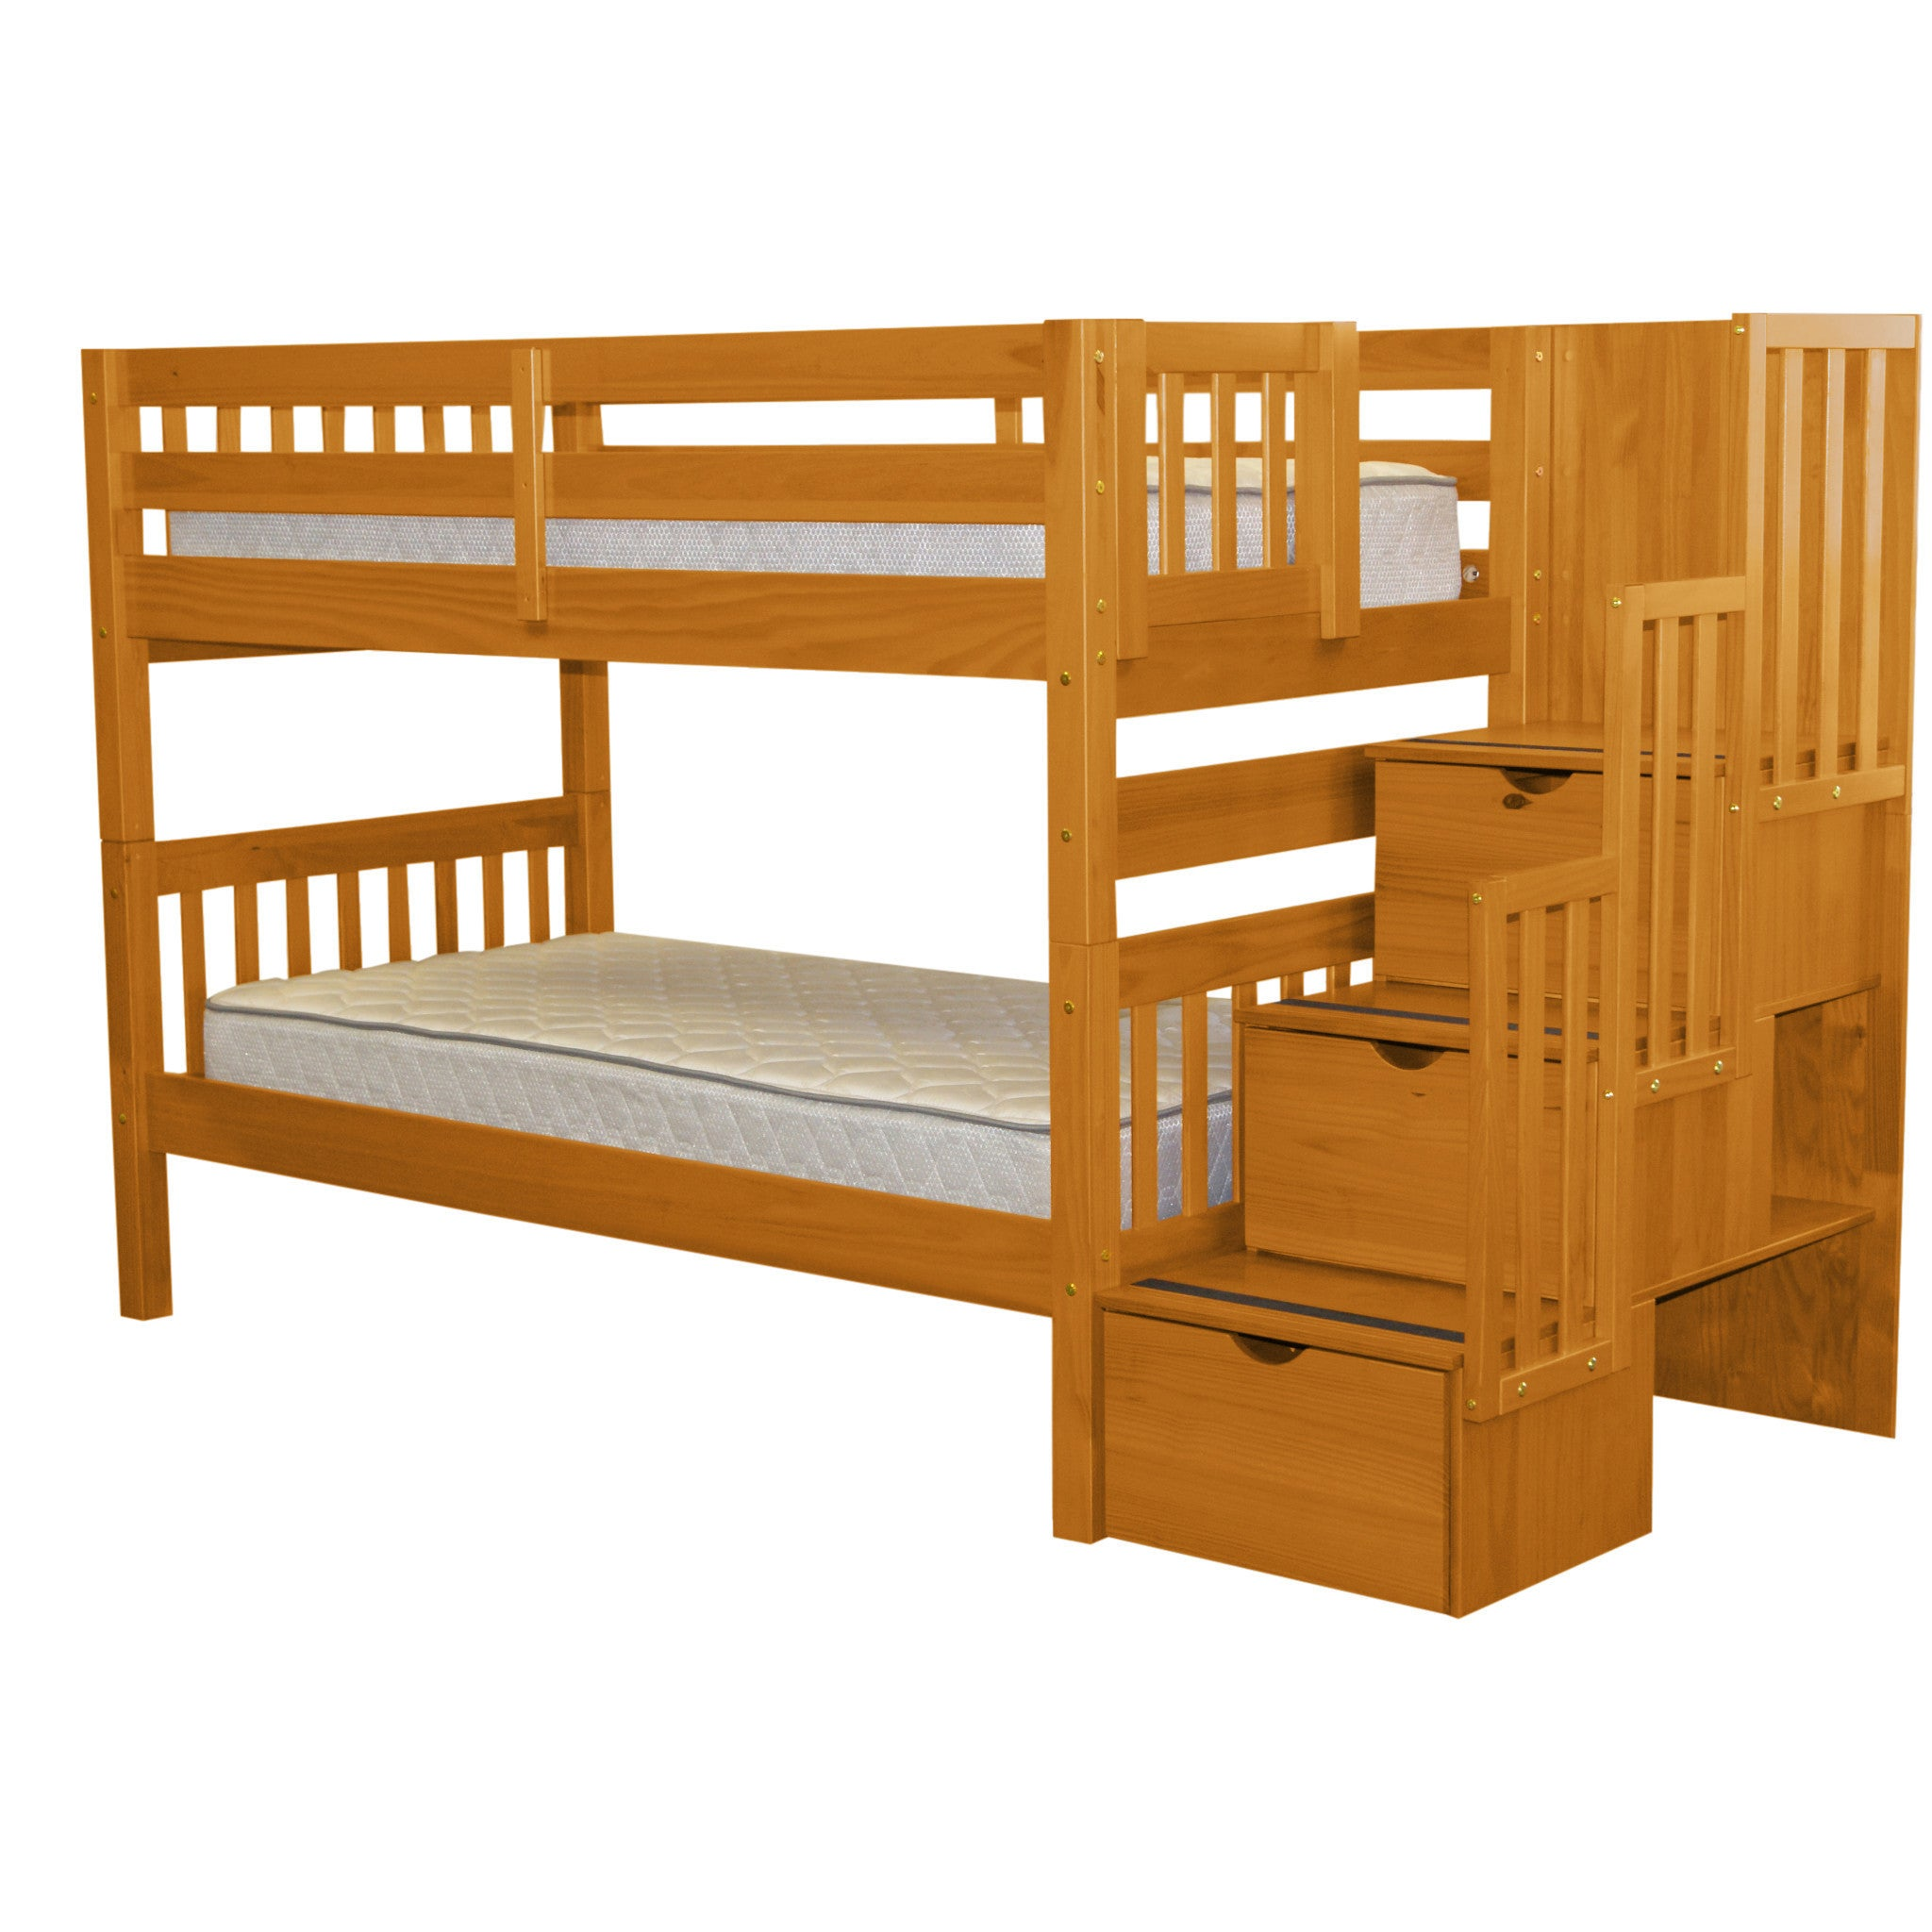 Bedz King Stairway Bunk Bed Twin Over With 3 Drawers In The Steps Honey